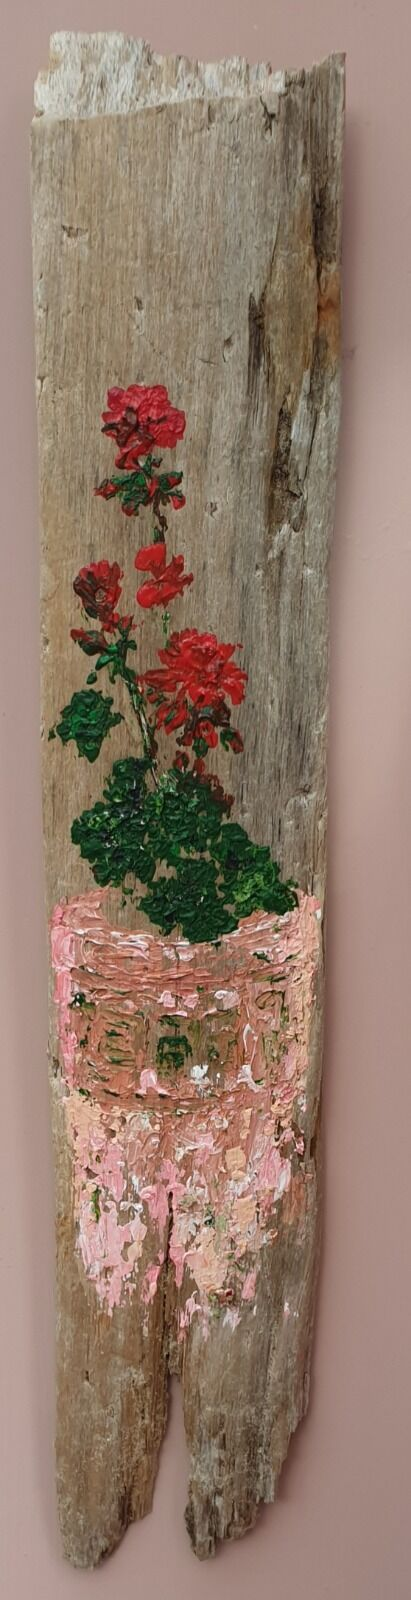 Red Geraniums on Driftwood